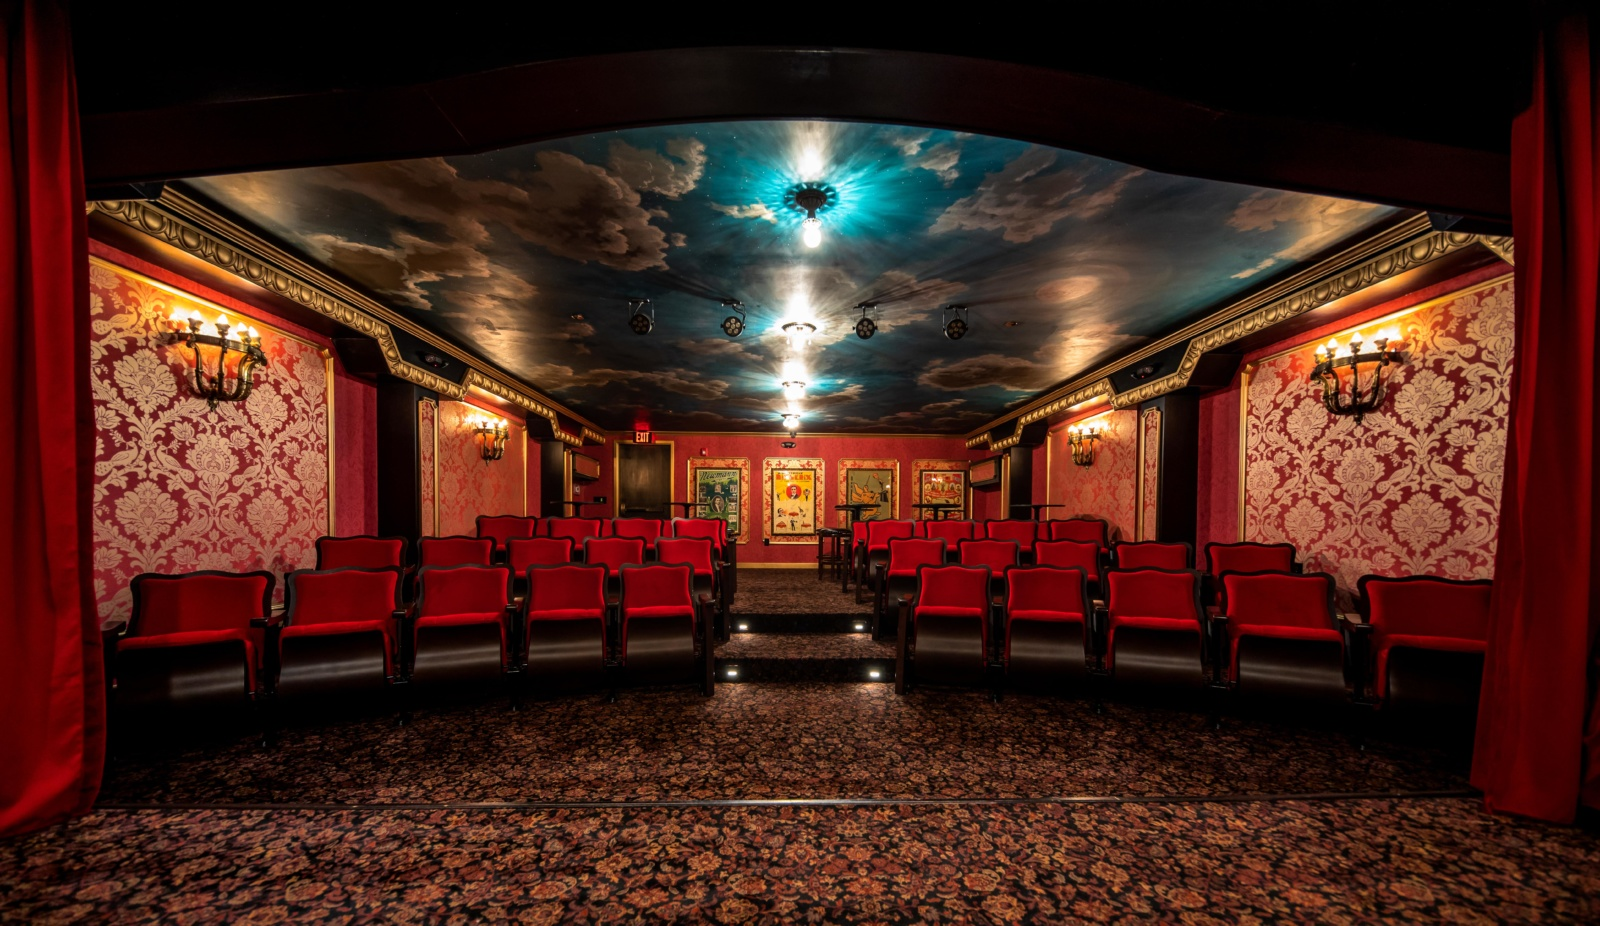 A look into the theater at House of Cards with a sky mural on the ceiling, warm and rich velvet curtains and theater seats, and rich details throughout.